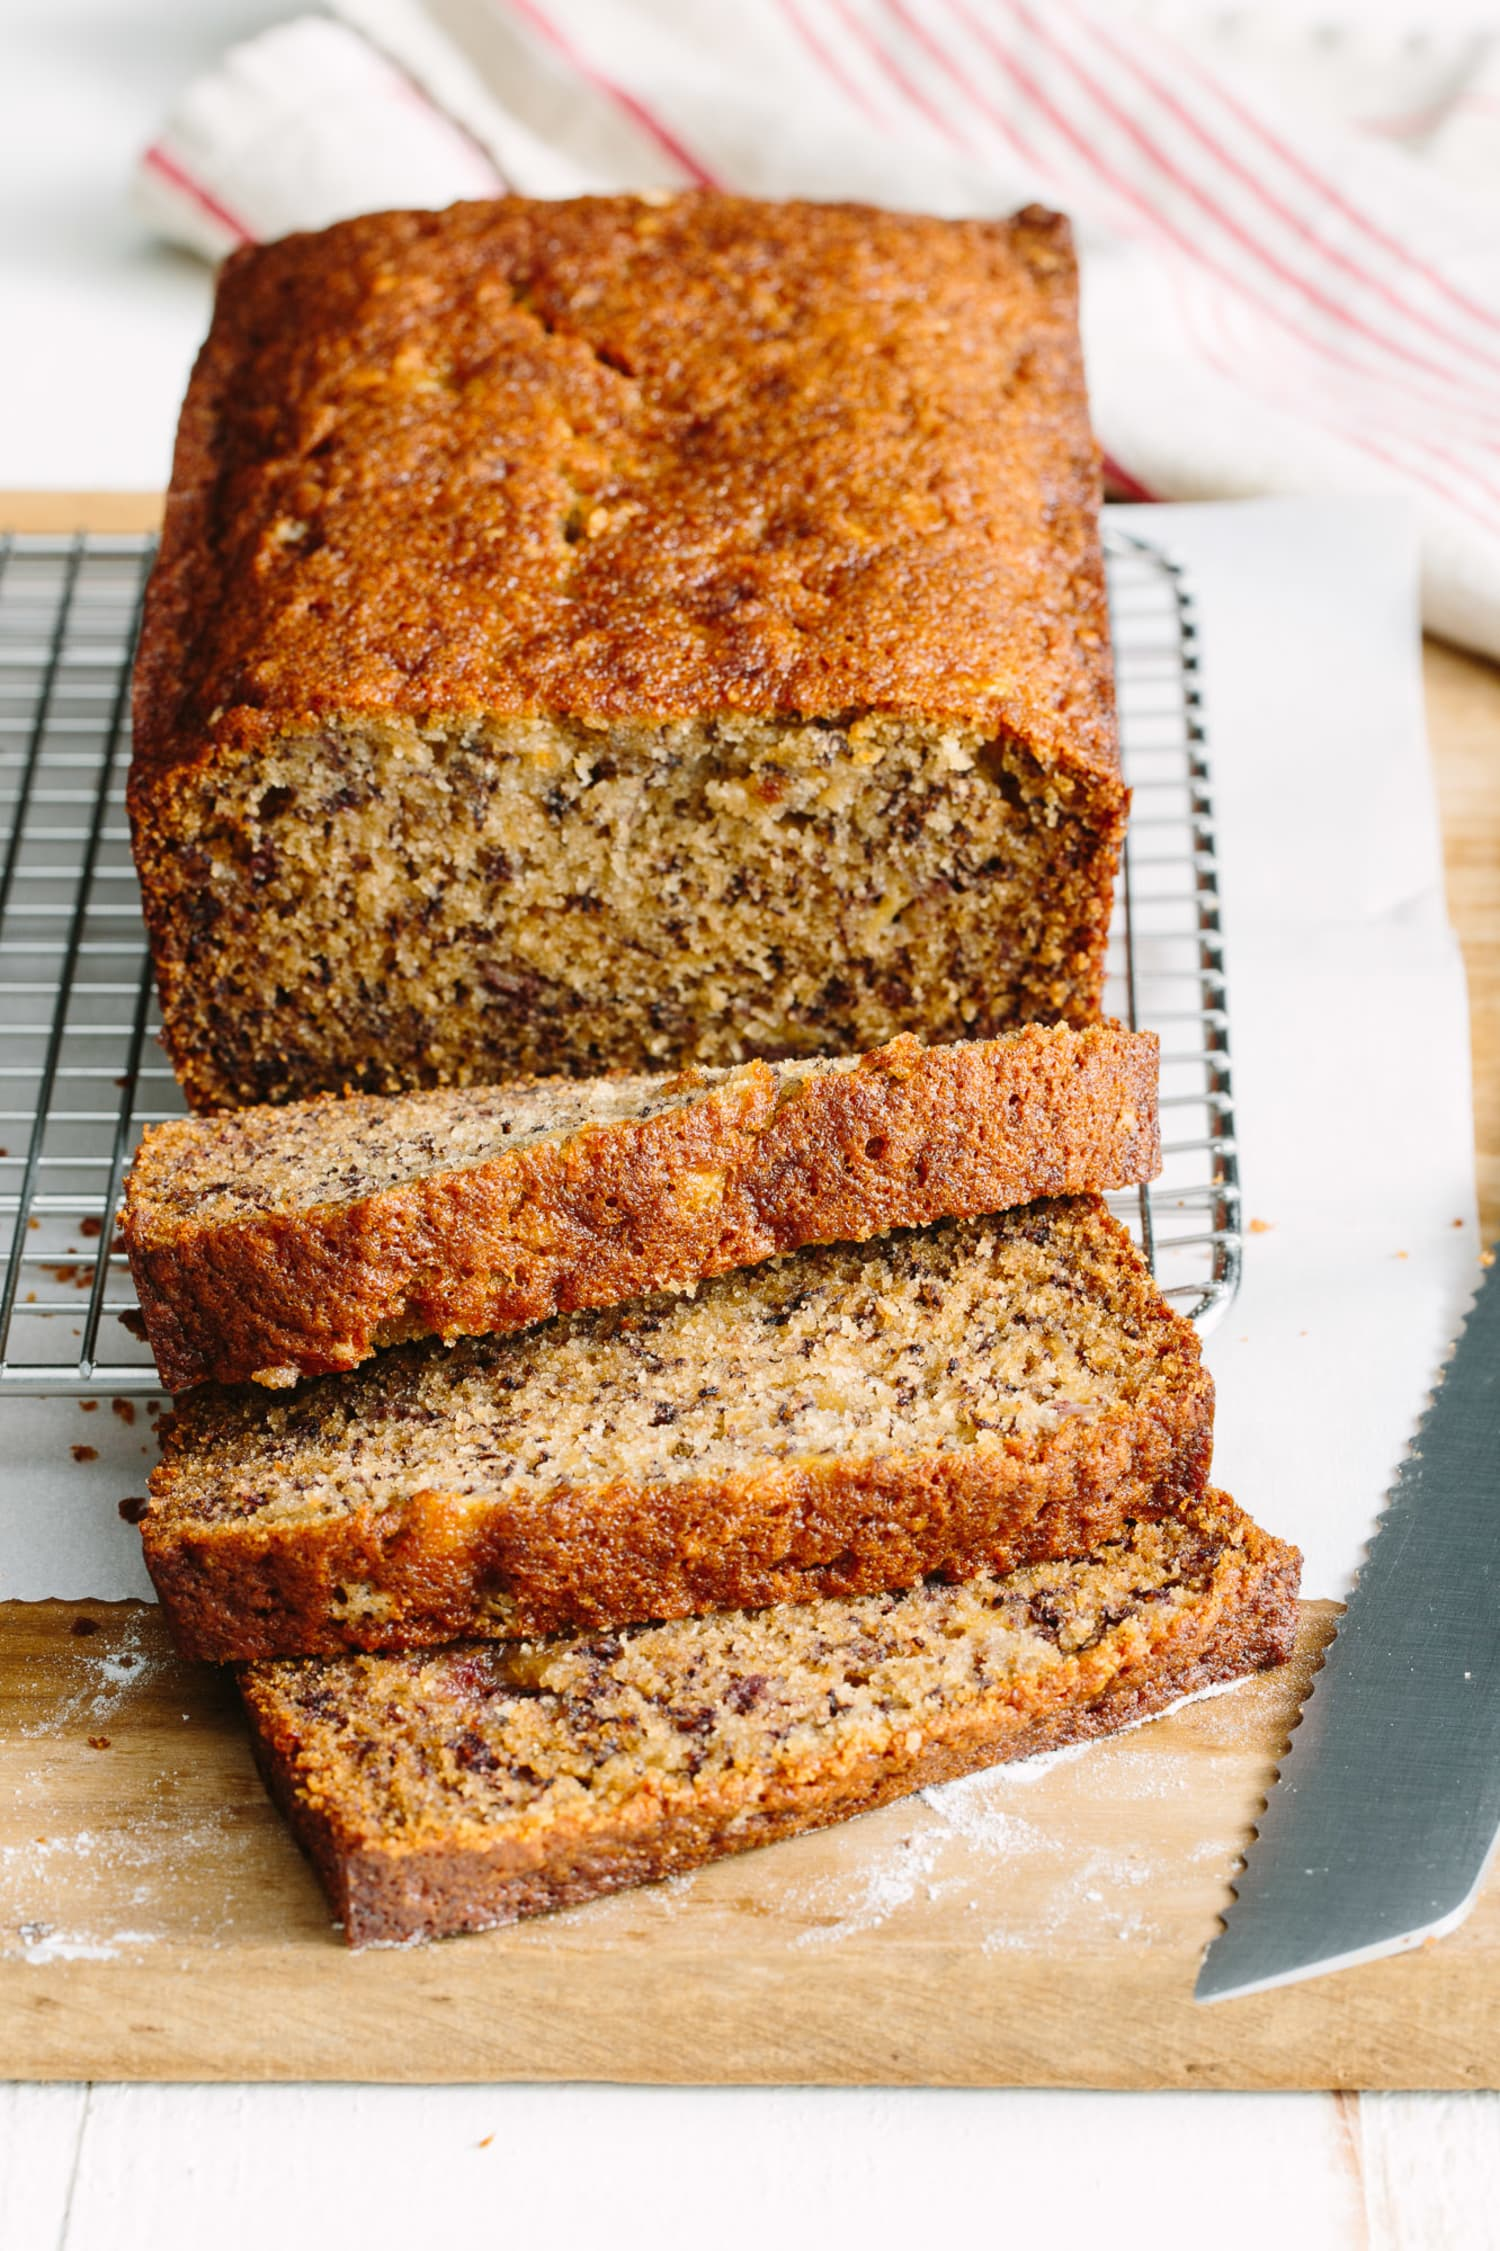 This Moist & Cakey Banana Bread Will Be Your New Go-To